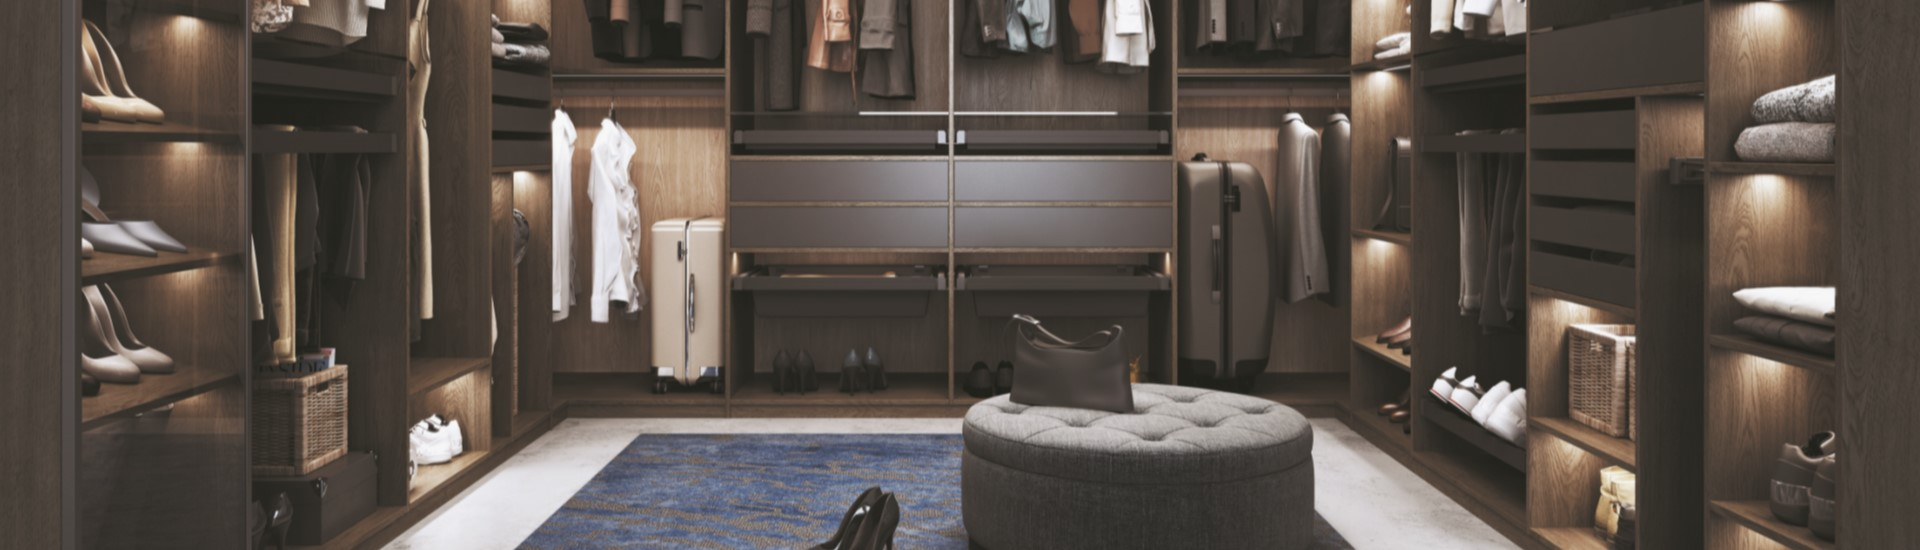 Custom Closet Organizers U0026 Sliding Doors In Toronto   Komandor